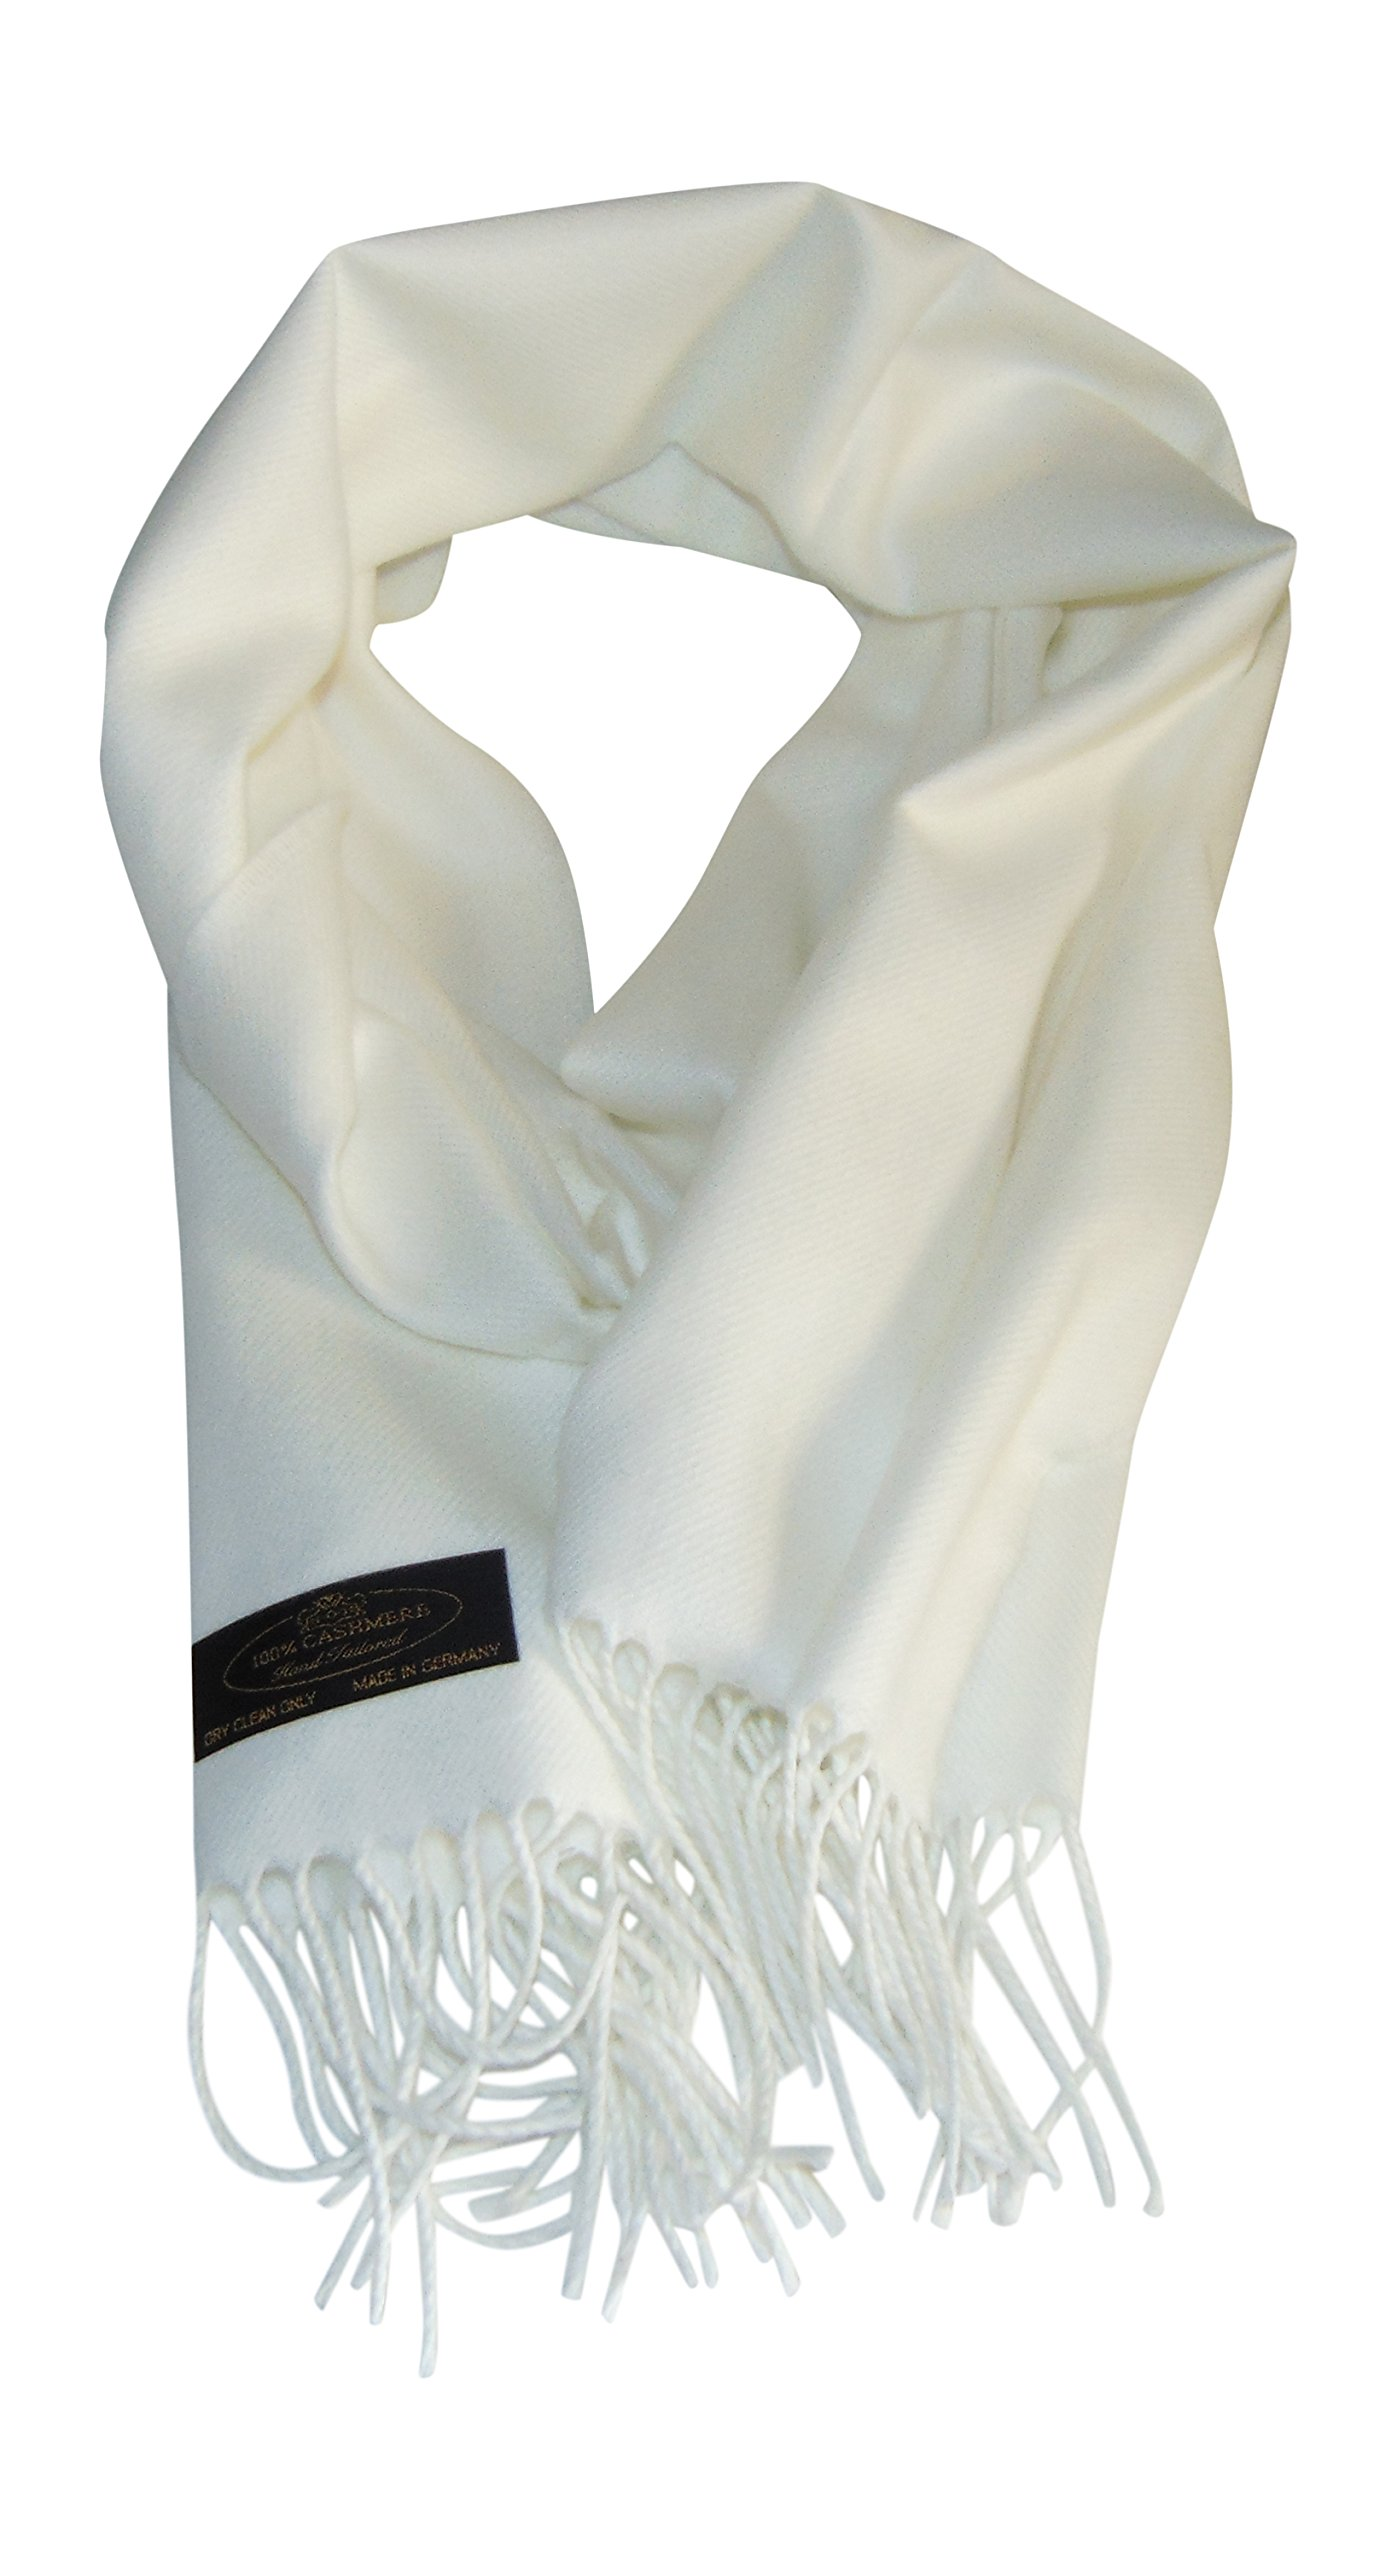 Annys Super Soft 100% Cashmere Scarf 12 X 72 with Gift Bag (White)